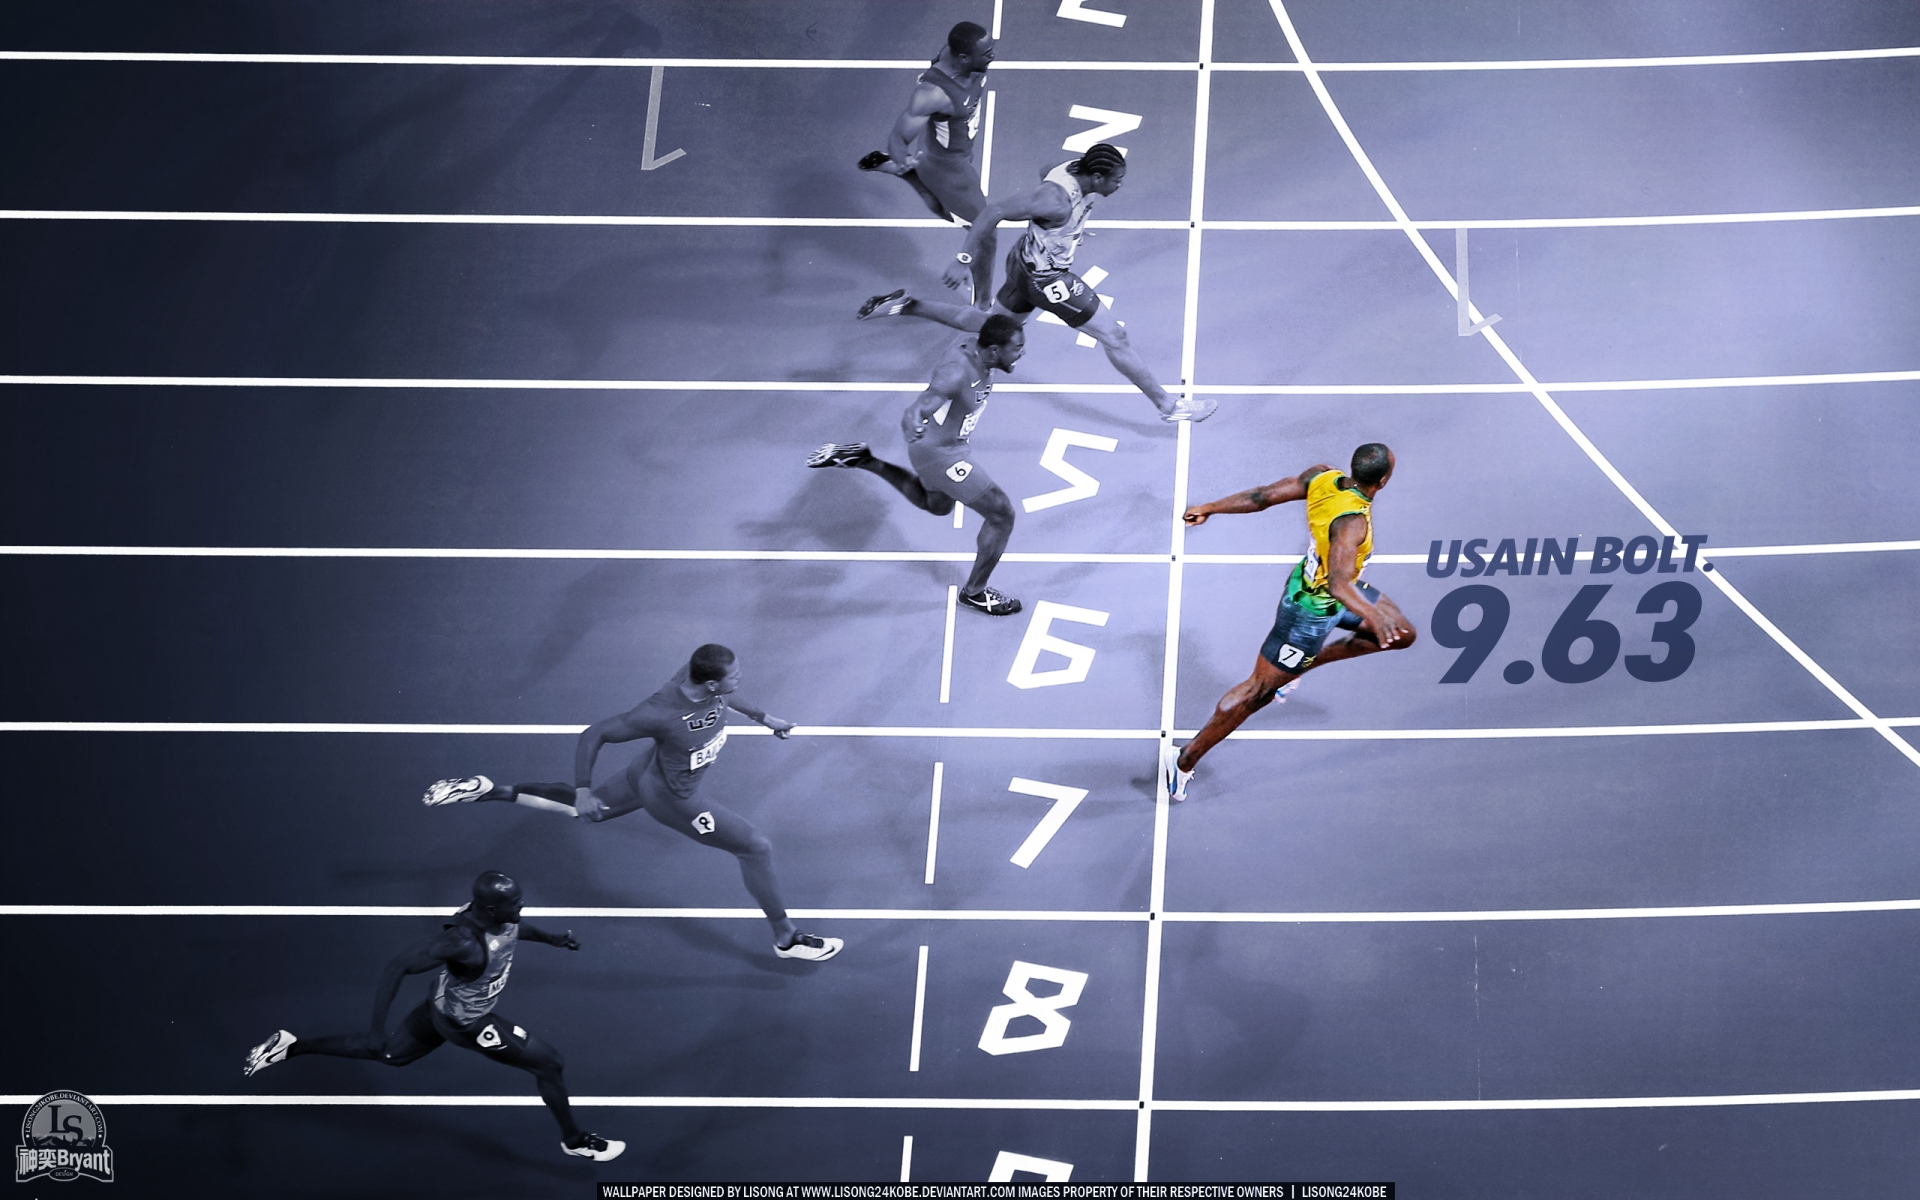 Usain Bolt Full HD Wallpaper And Background Image